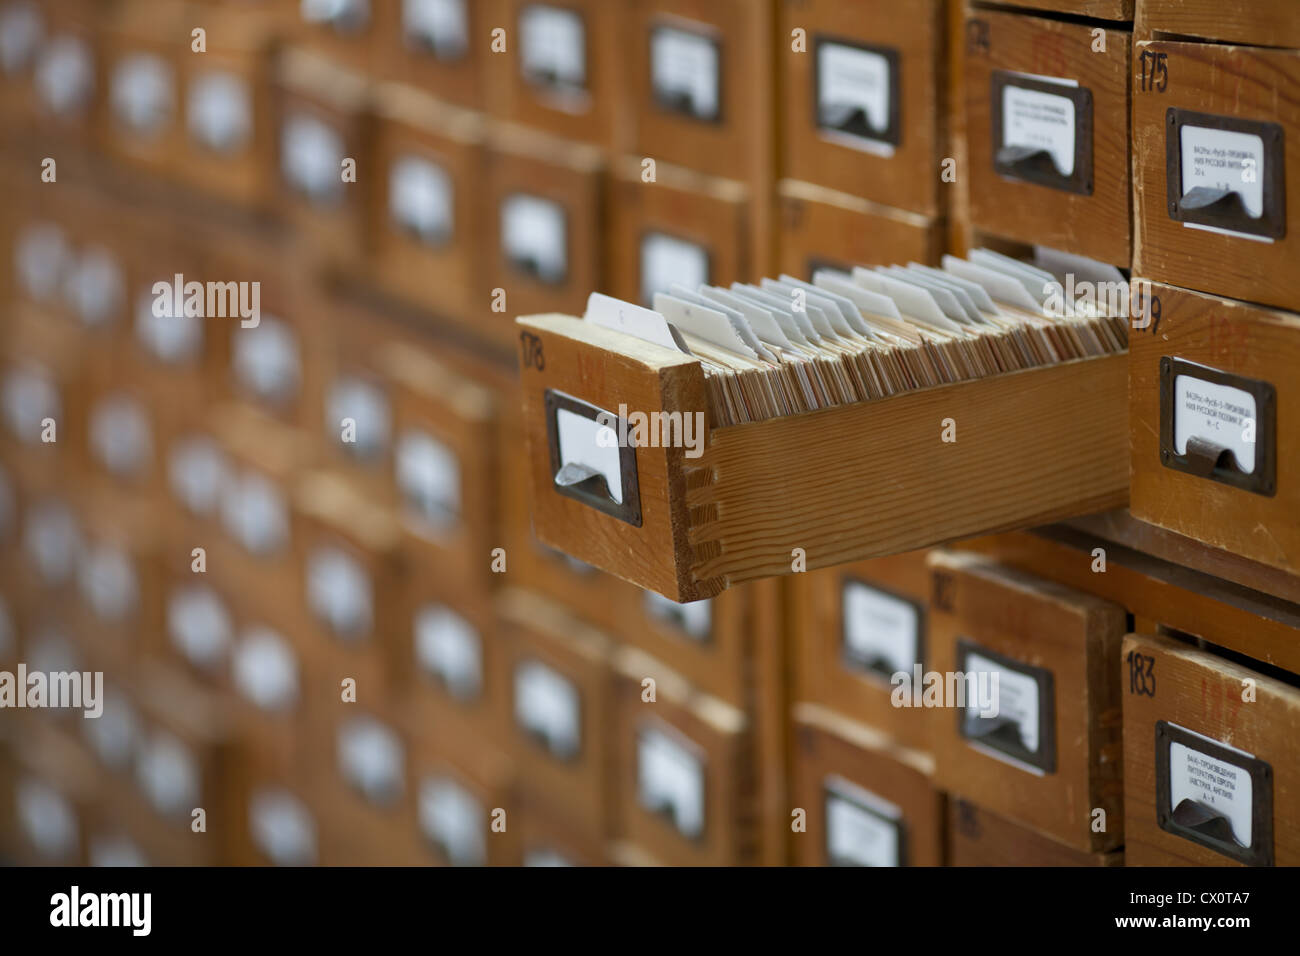 database concept. vintage cabinet. library card or file catalog. - Stock Image